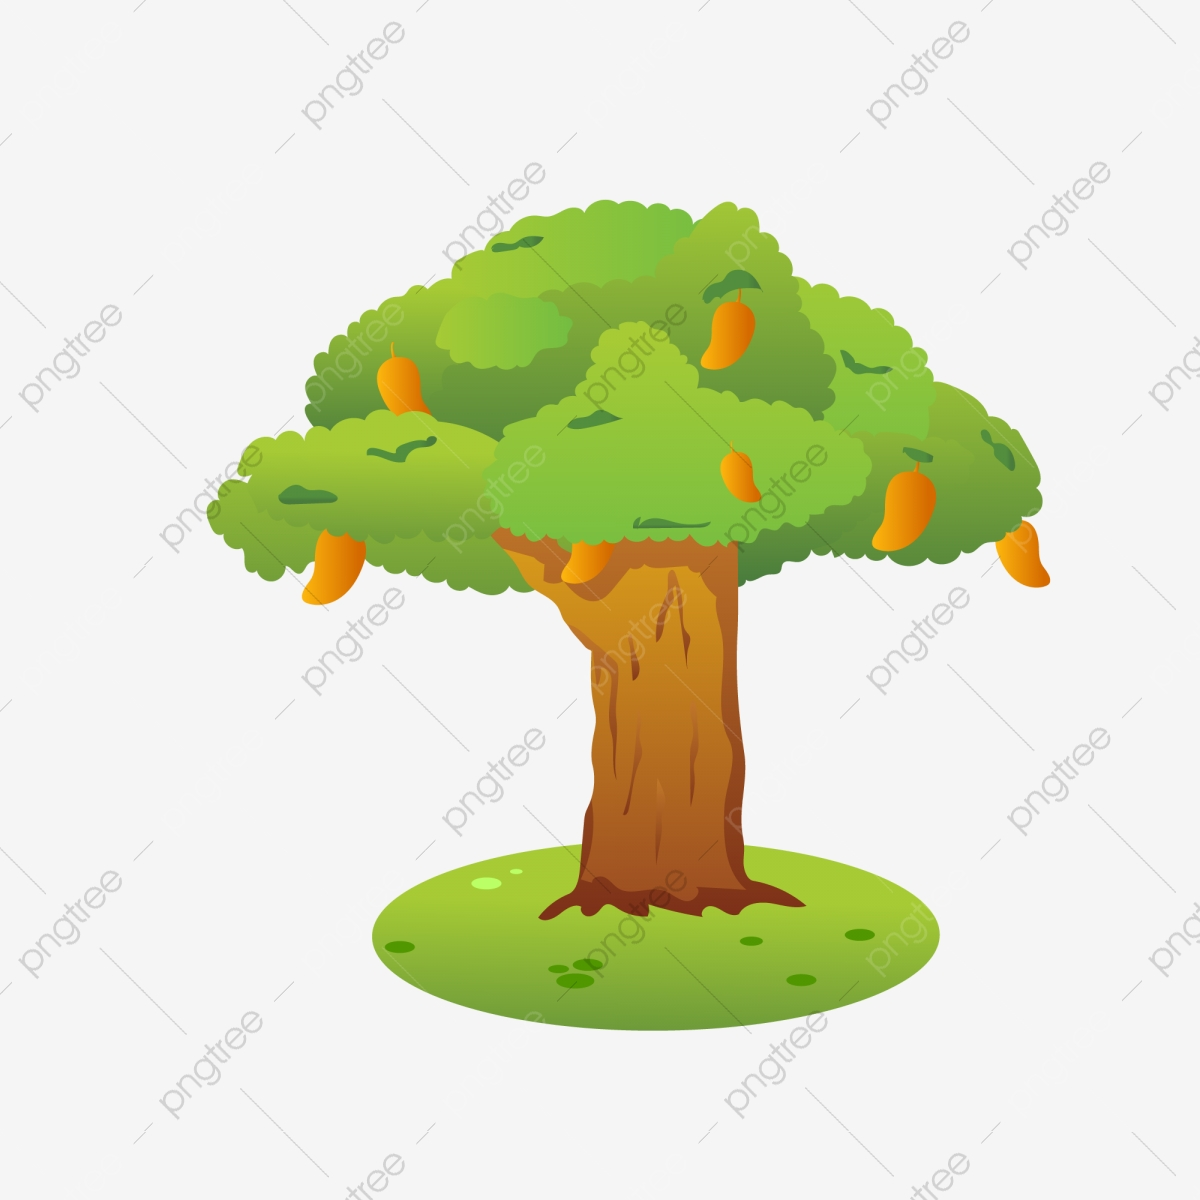 Mango Tree Png Images Vector And Psd Files Free Download On Pngtree Devil character mango tree beside the mango tree with mango fruits isolated on white. https pngtree com freepng mango tree 1095542 html